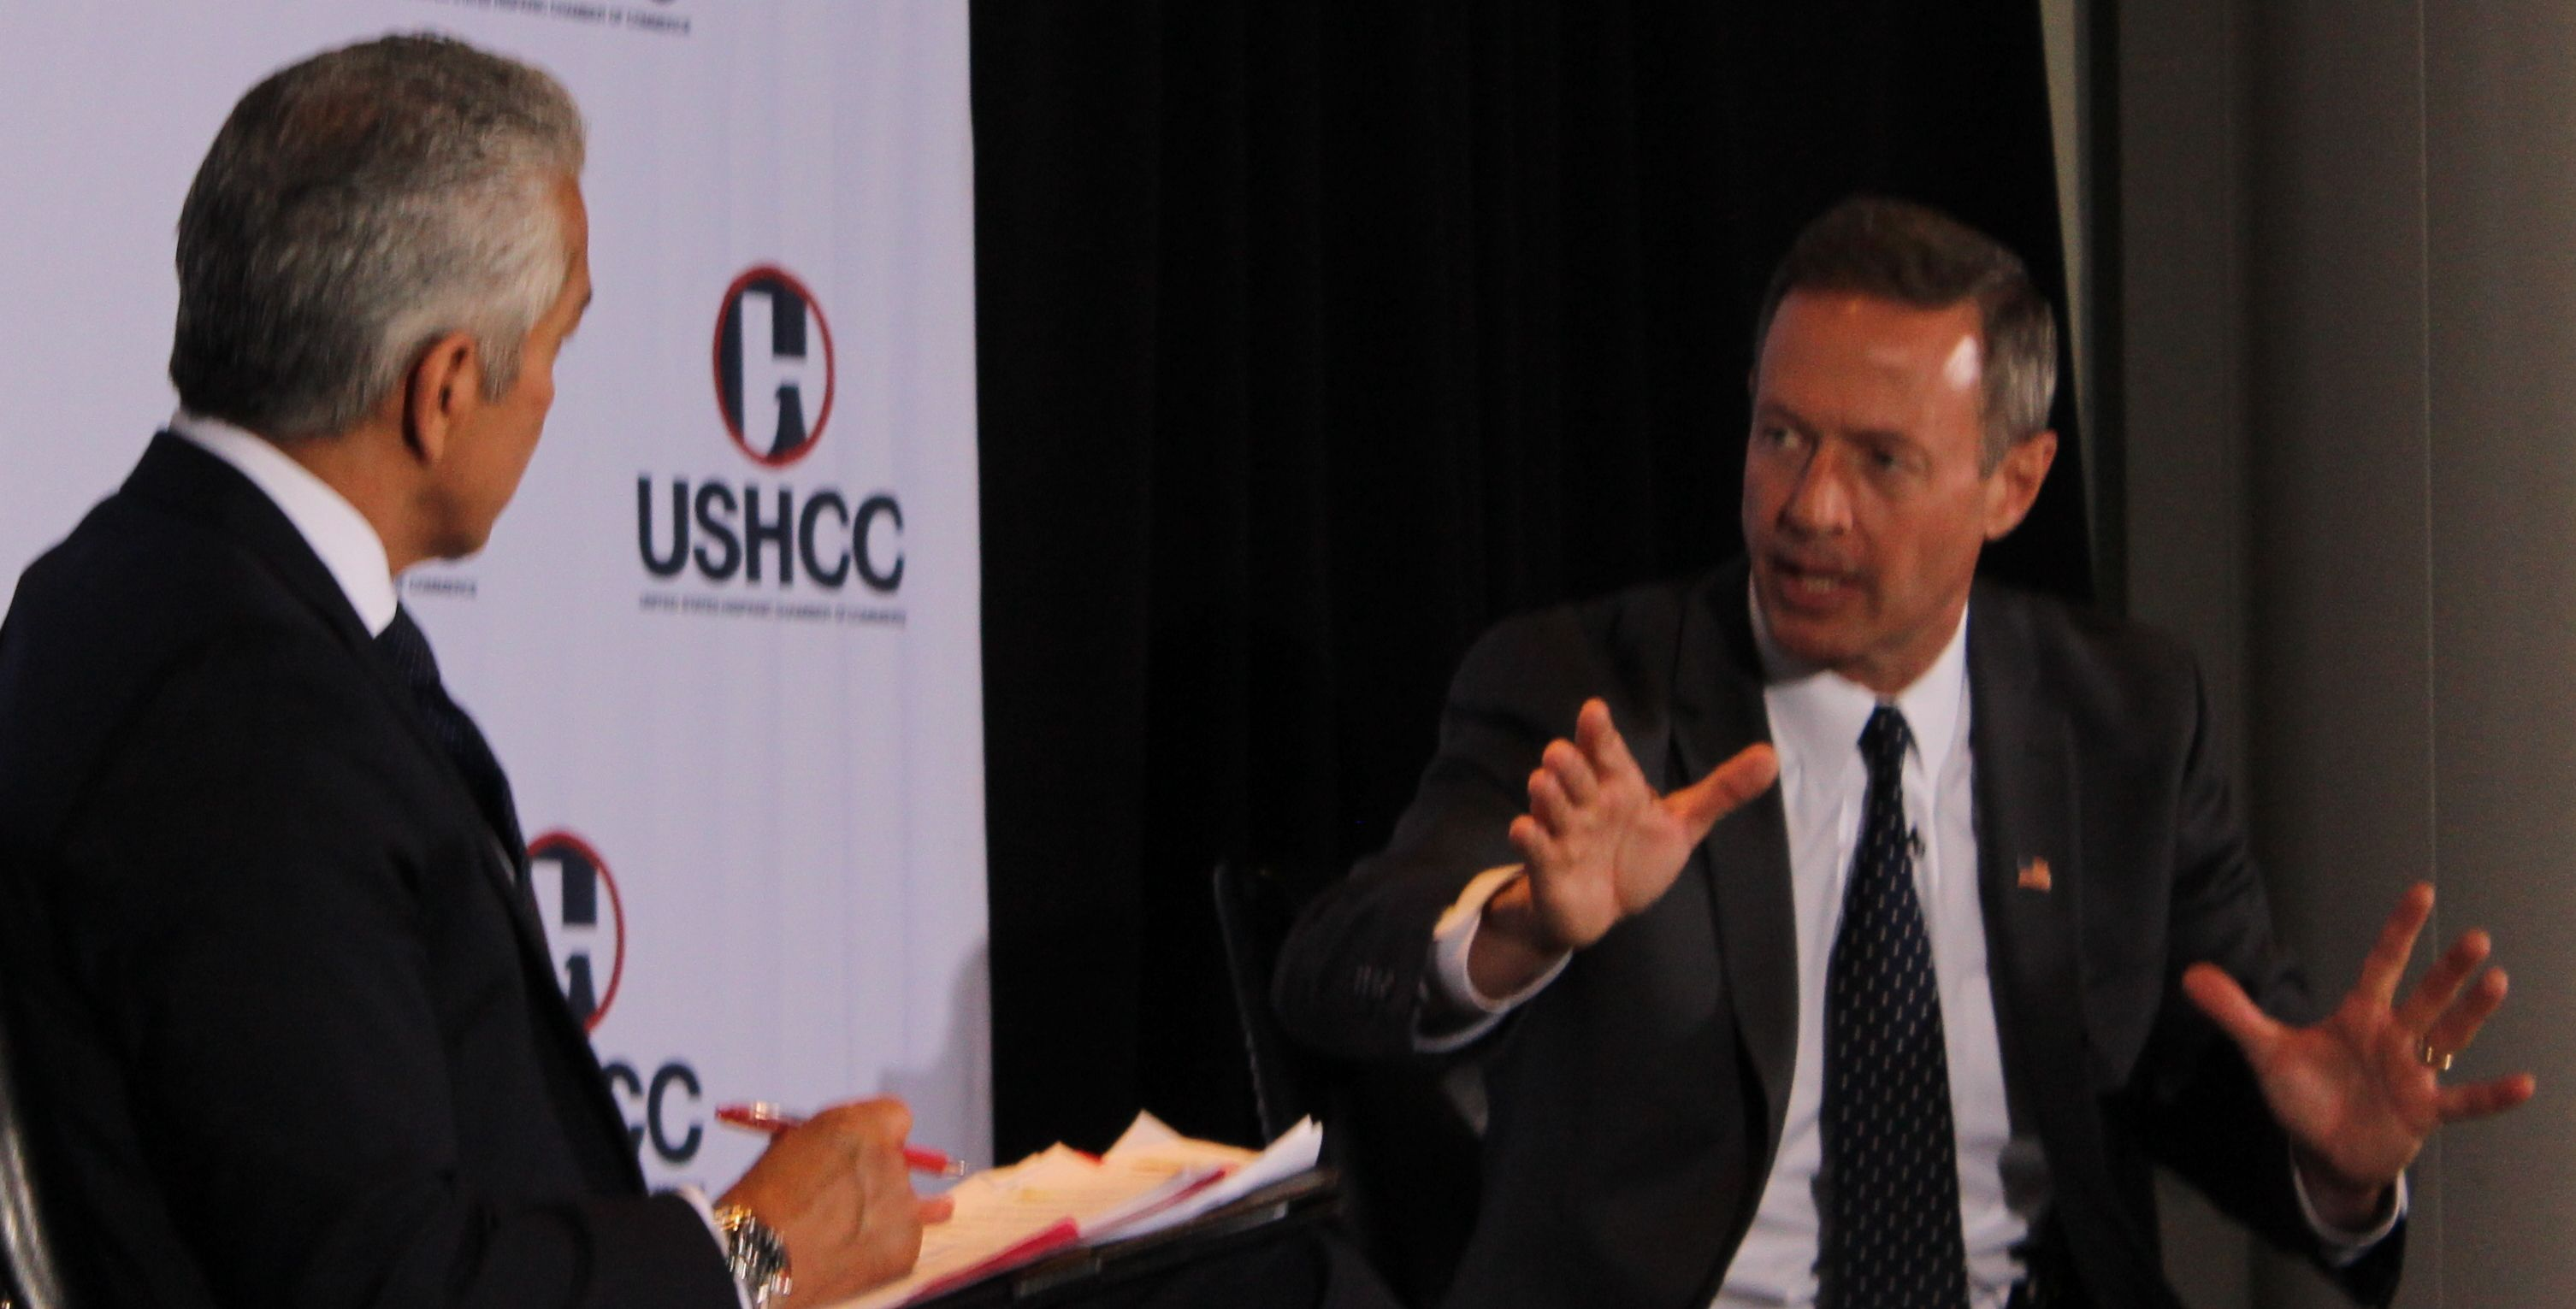 Martin O'Malley and US HCC President Javier Palomarez at Newseum June 3, 2015 (Andrew Kreig photo)